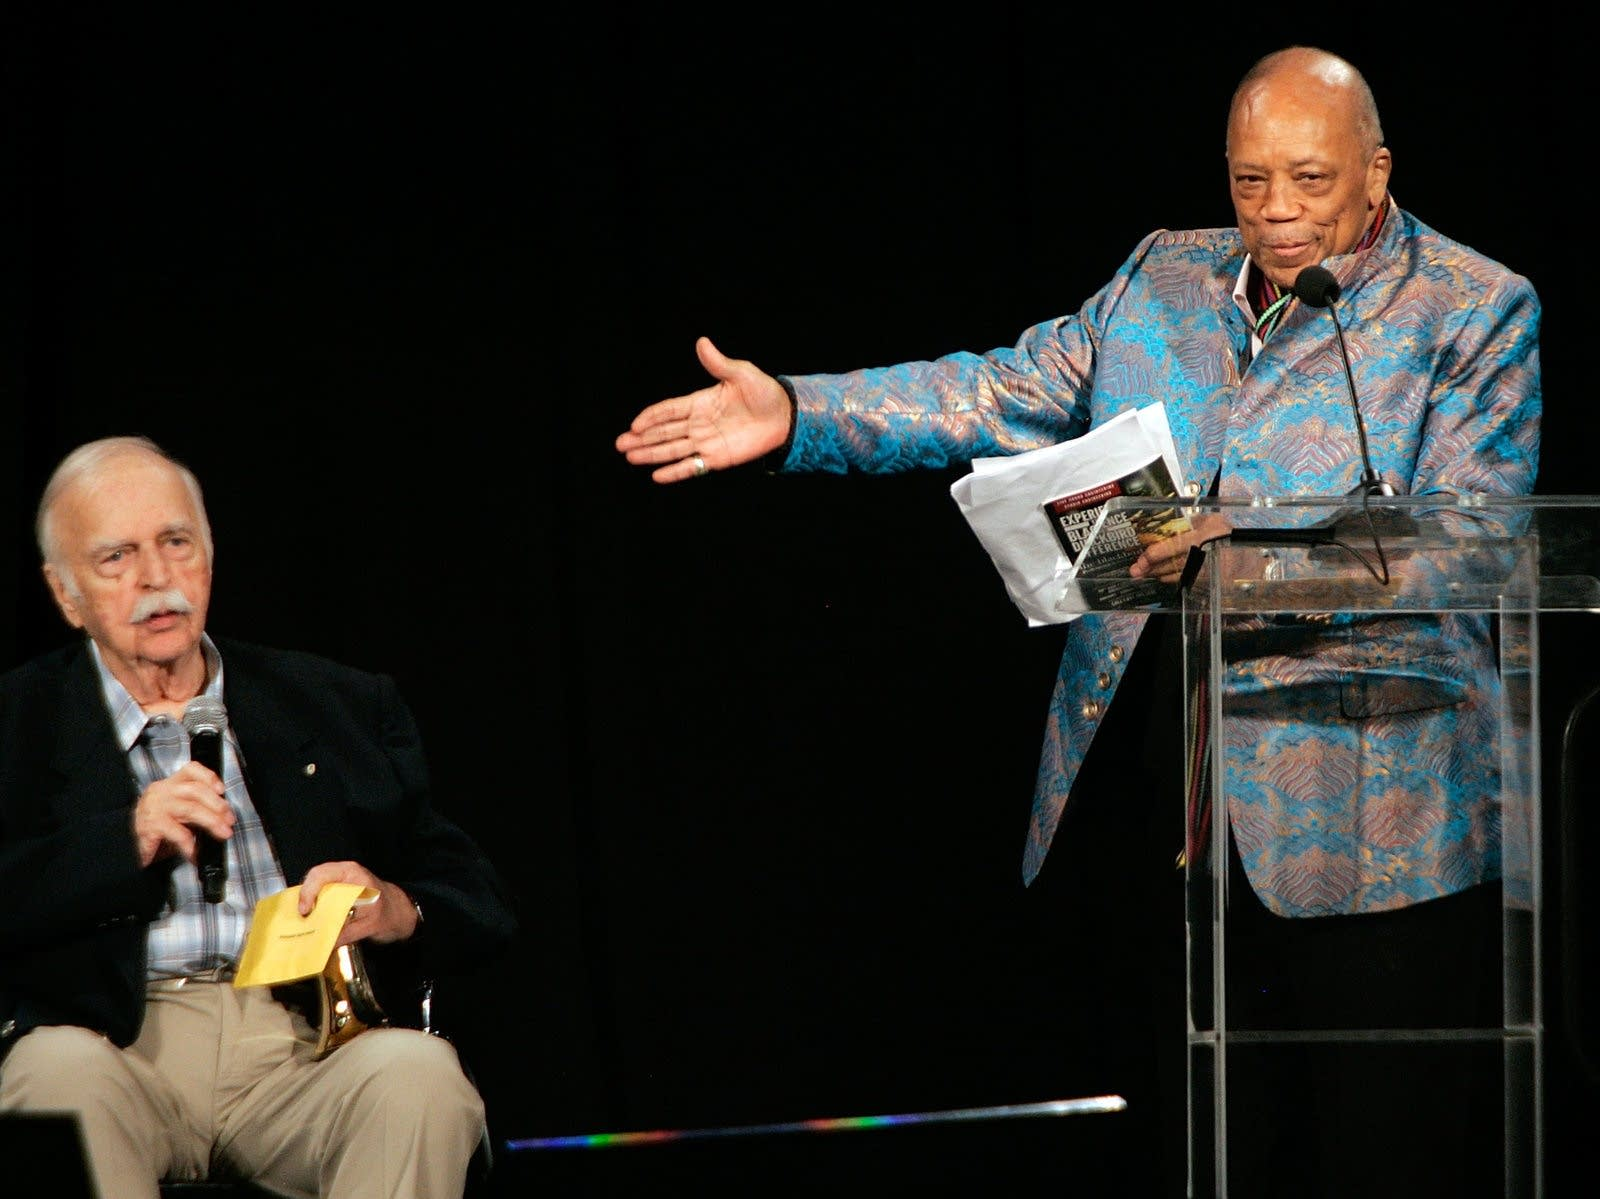 Bruce Swedien and Quincy Jones onstage together